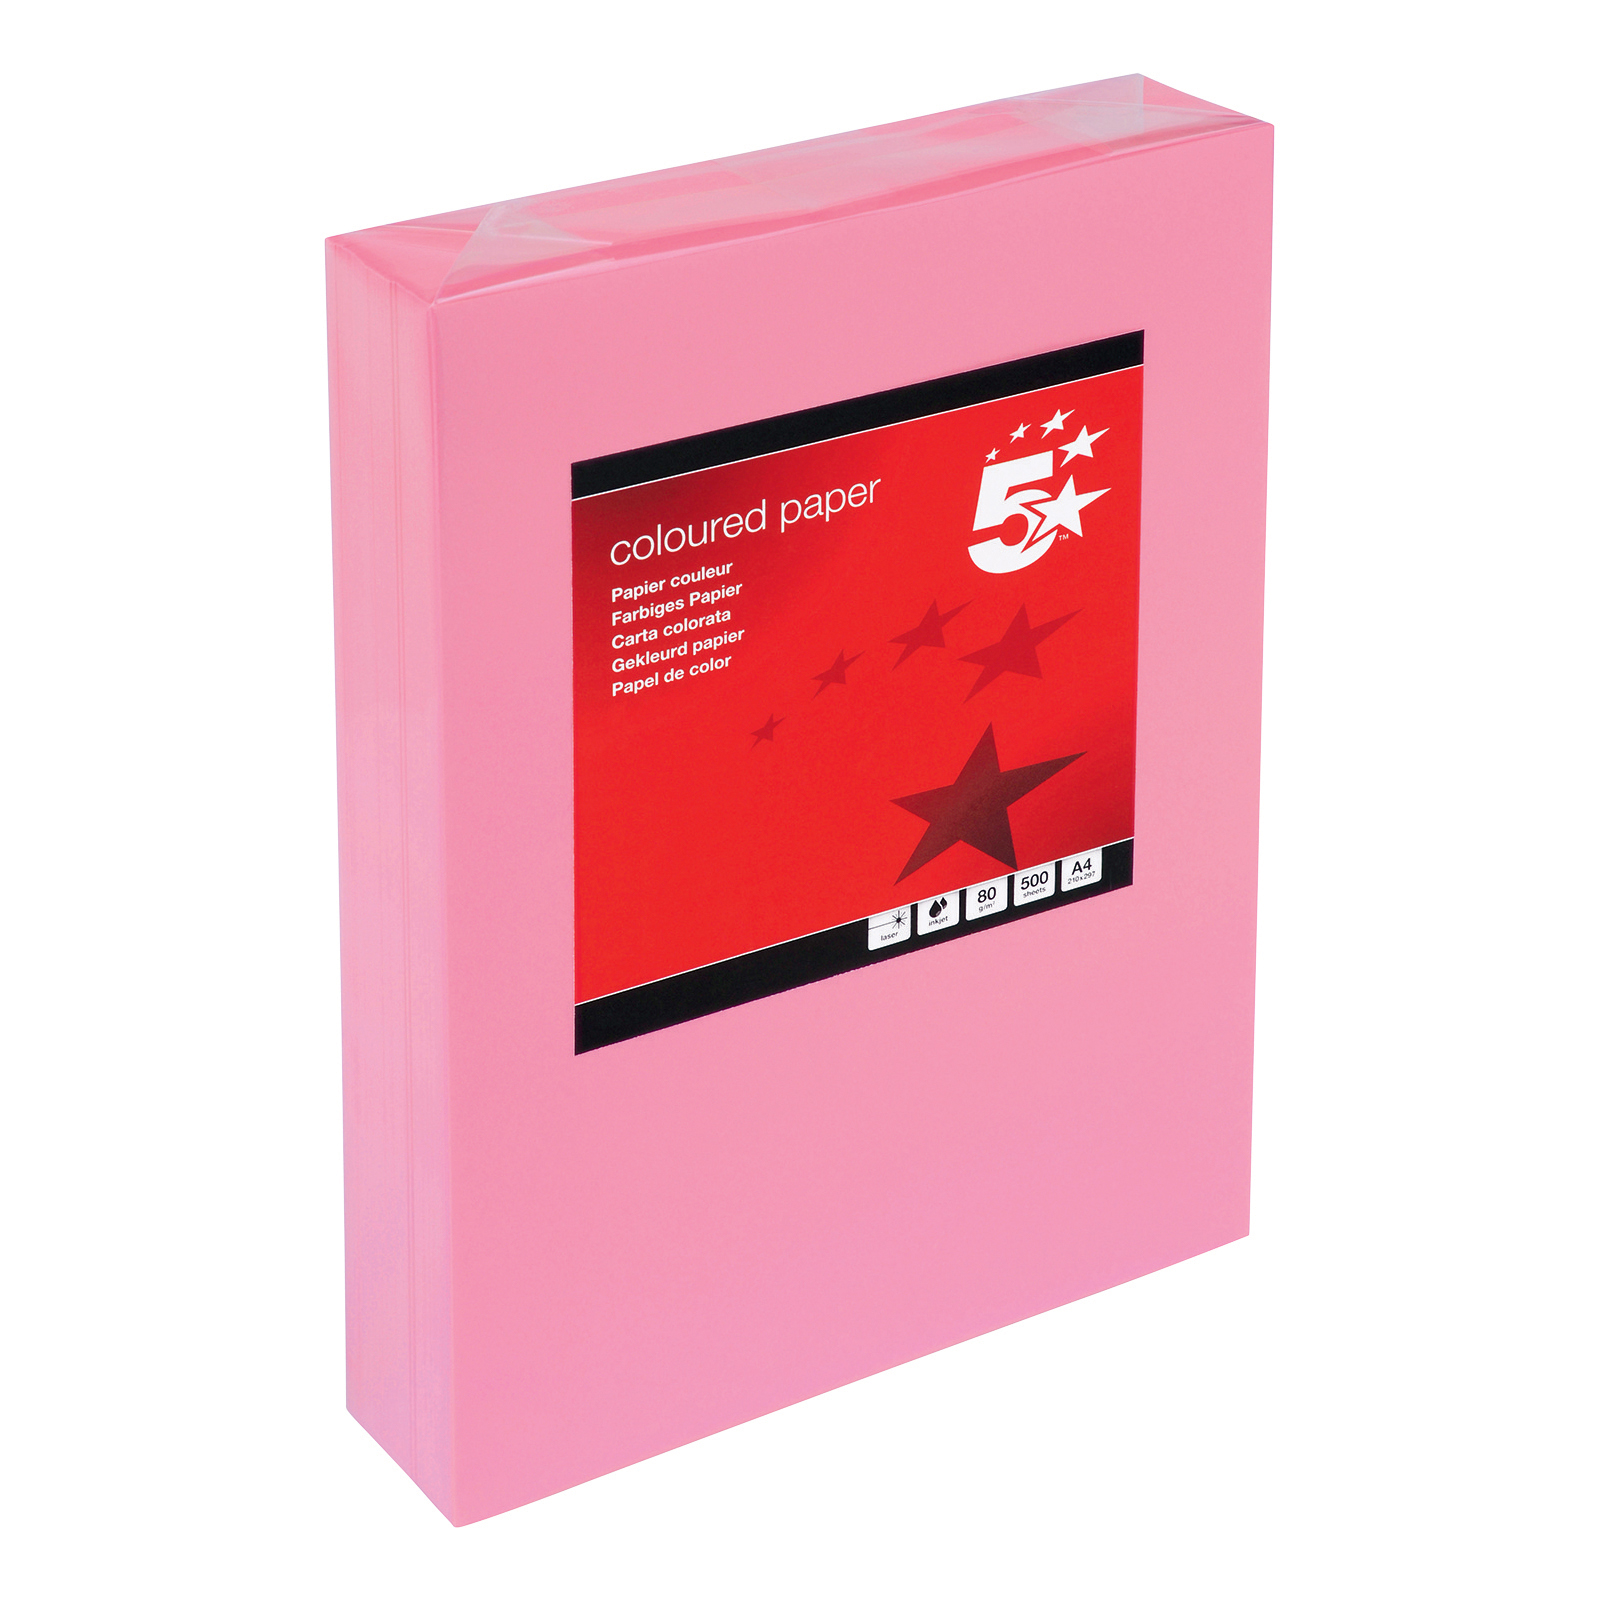 A4 5 Star Office Coloured Copier Paper Multifunctional Ream-Wrapped 80gsm A4 Medium Pink 500 Sheets